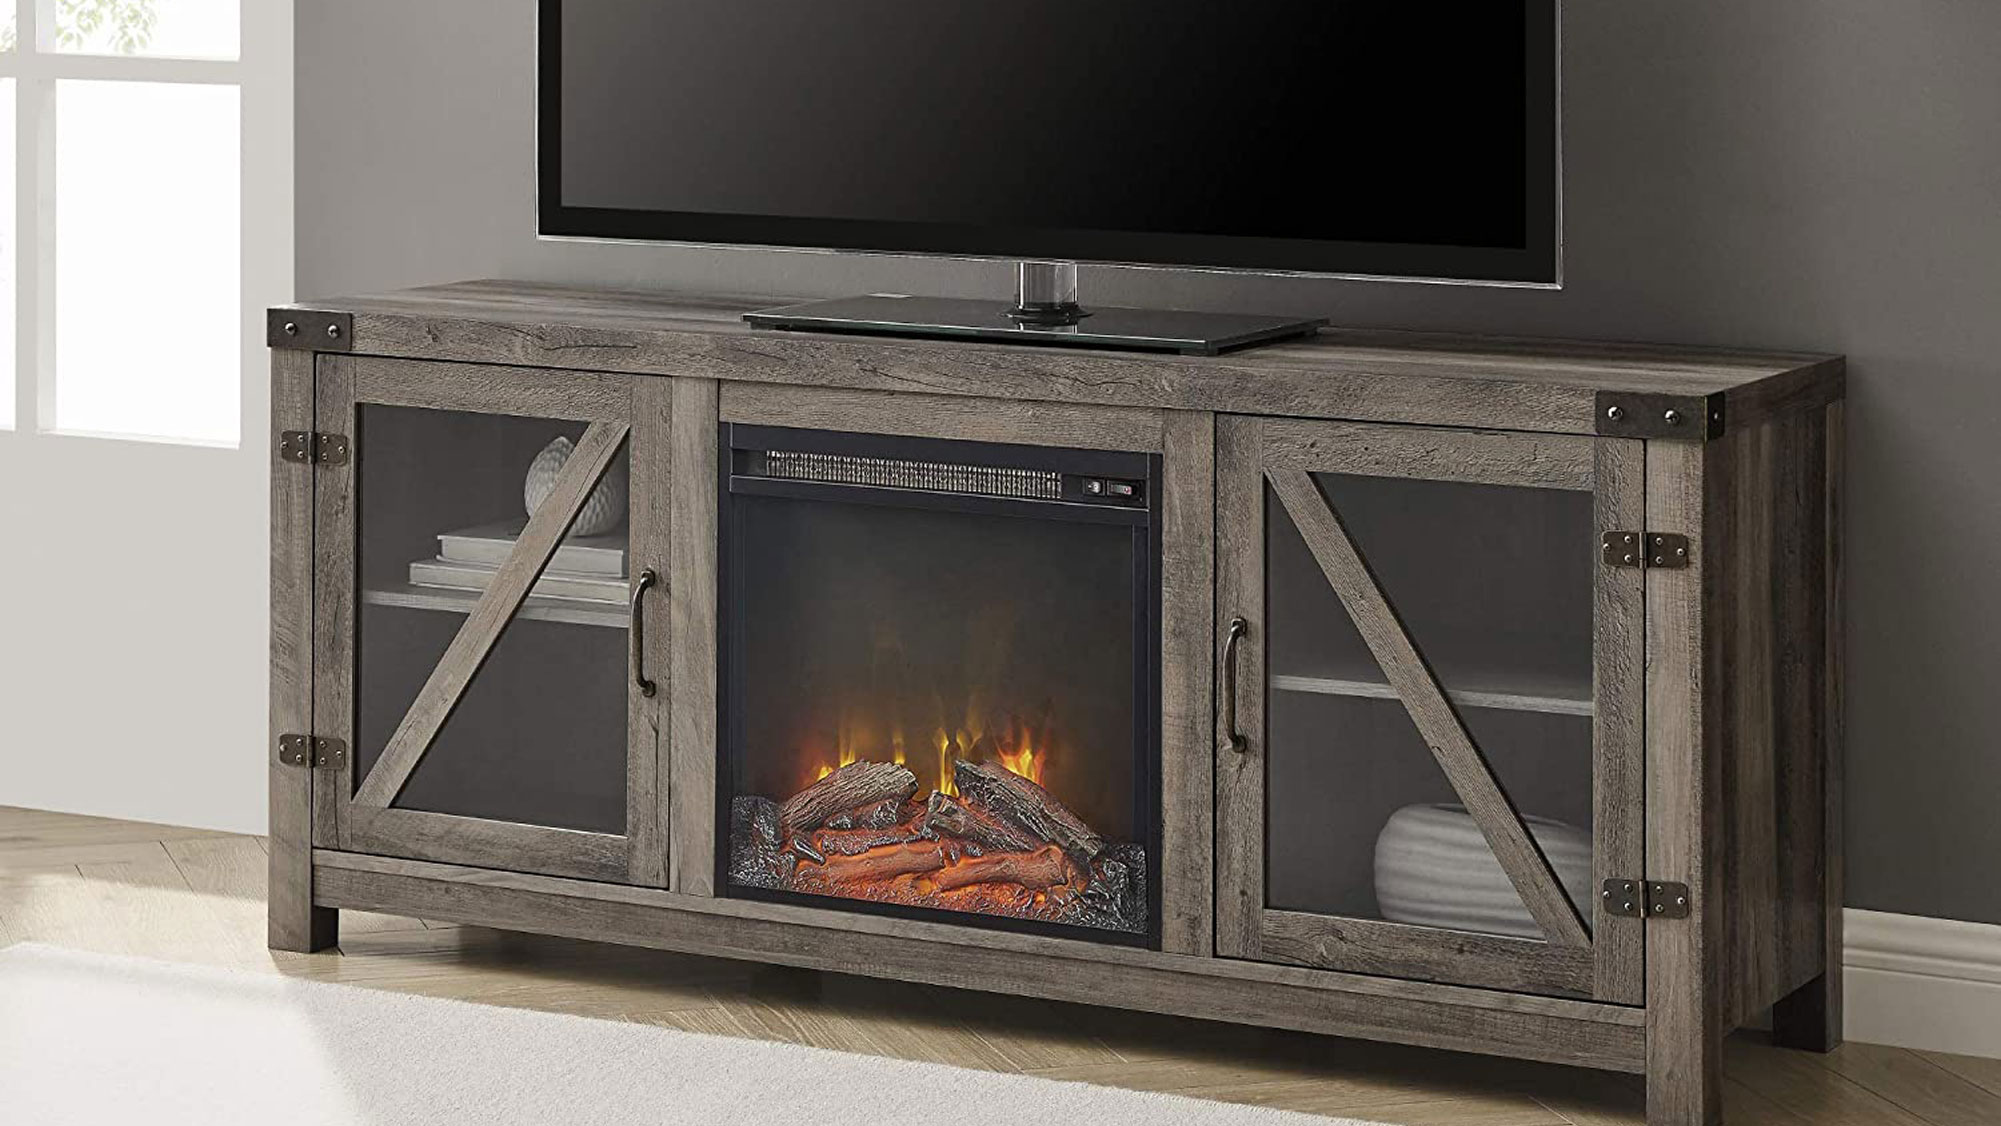 Walker Edison Farmhouse Barn Wood and Glass Fireplace Stand for TV